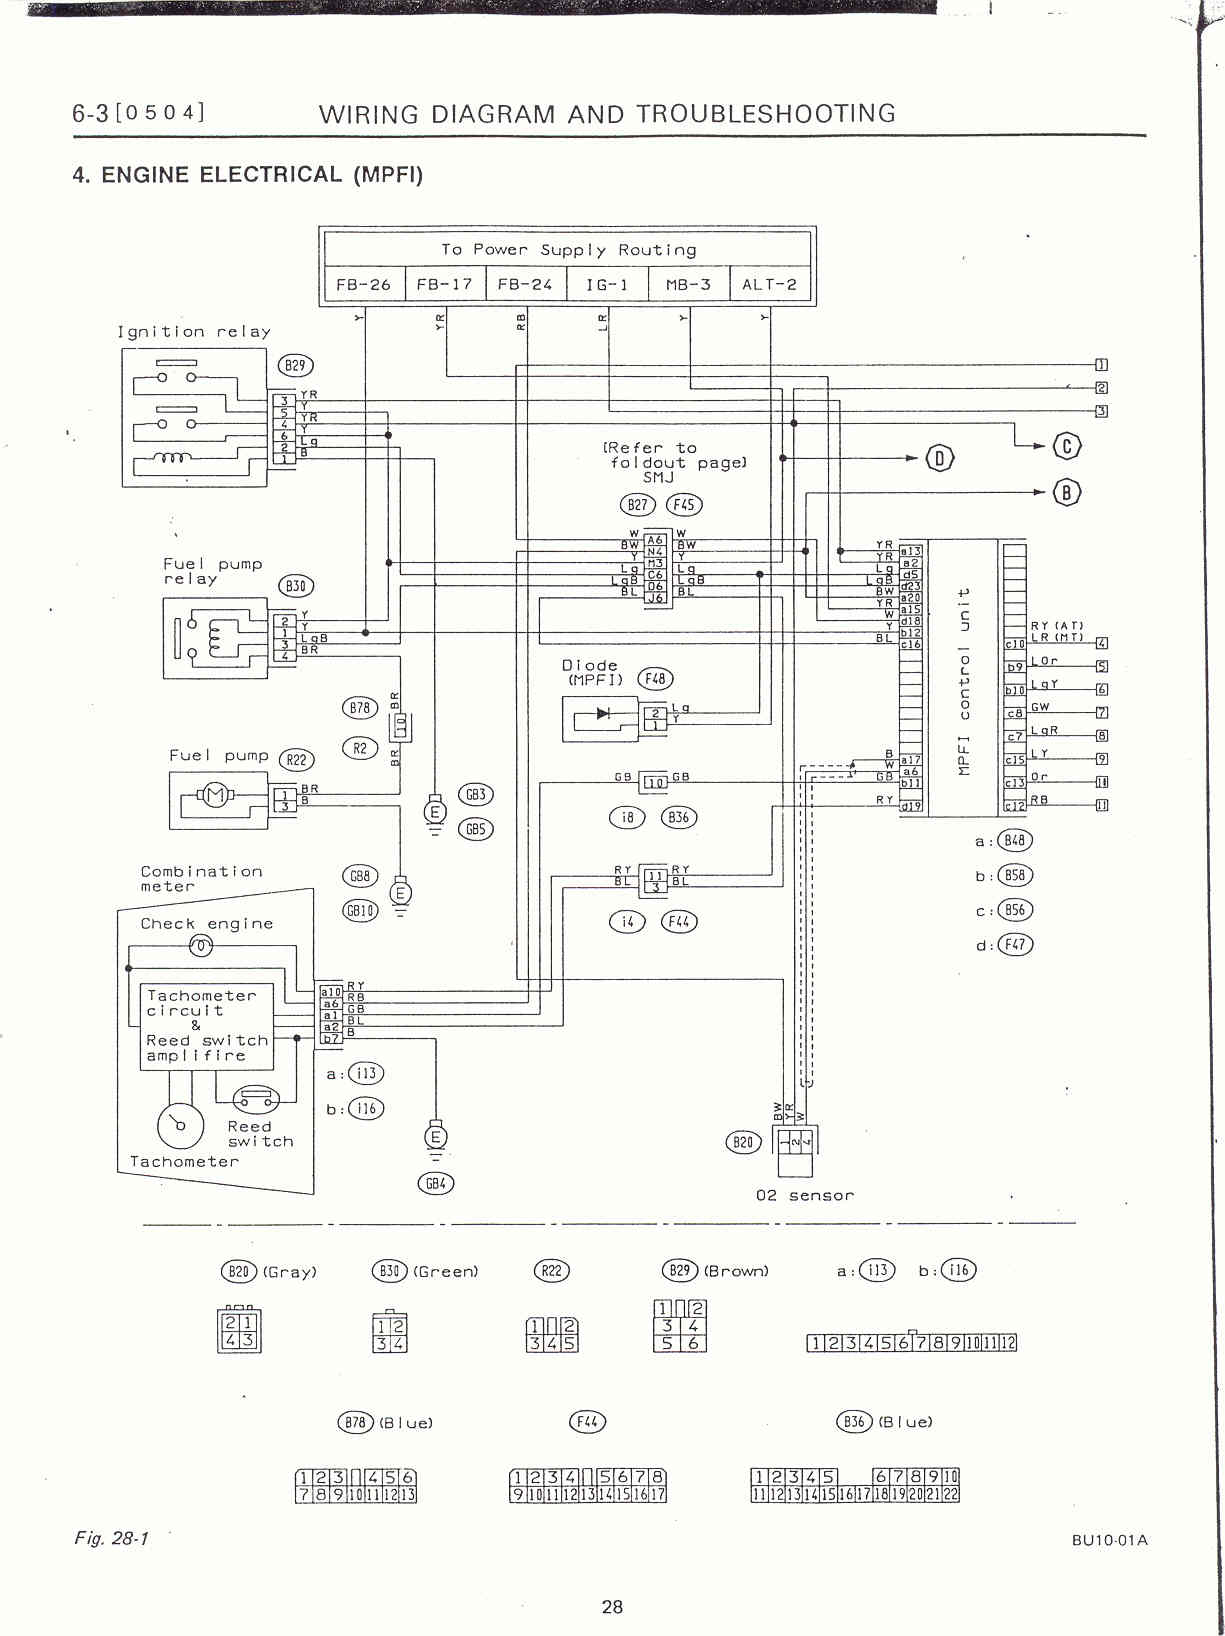 1999 Ford Contour O2 Sensor Wiring Diagram Library 98 Engine Egr Valve Location Free 1998 Lincoln Continental Spark Plug